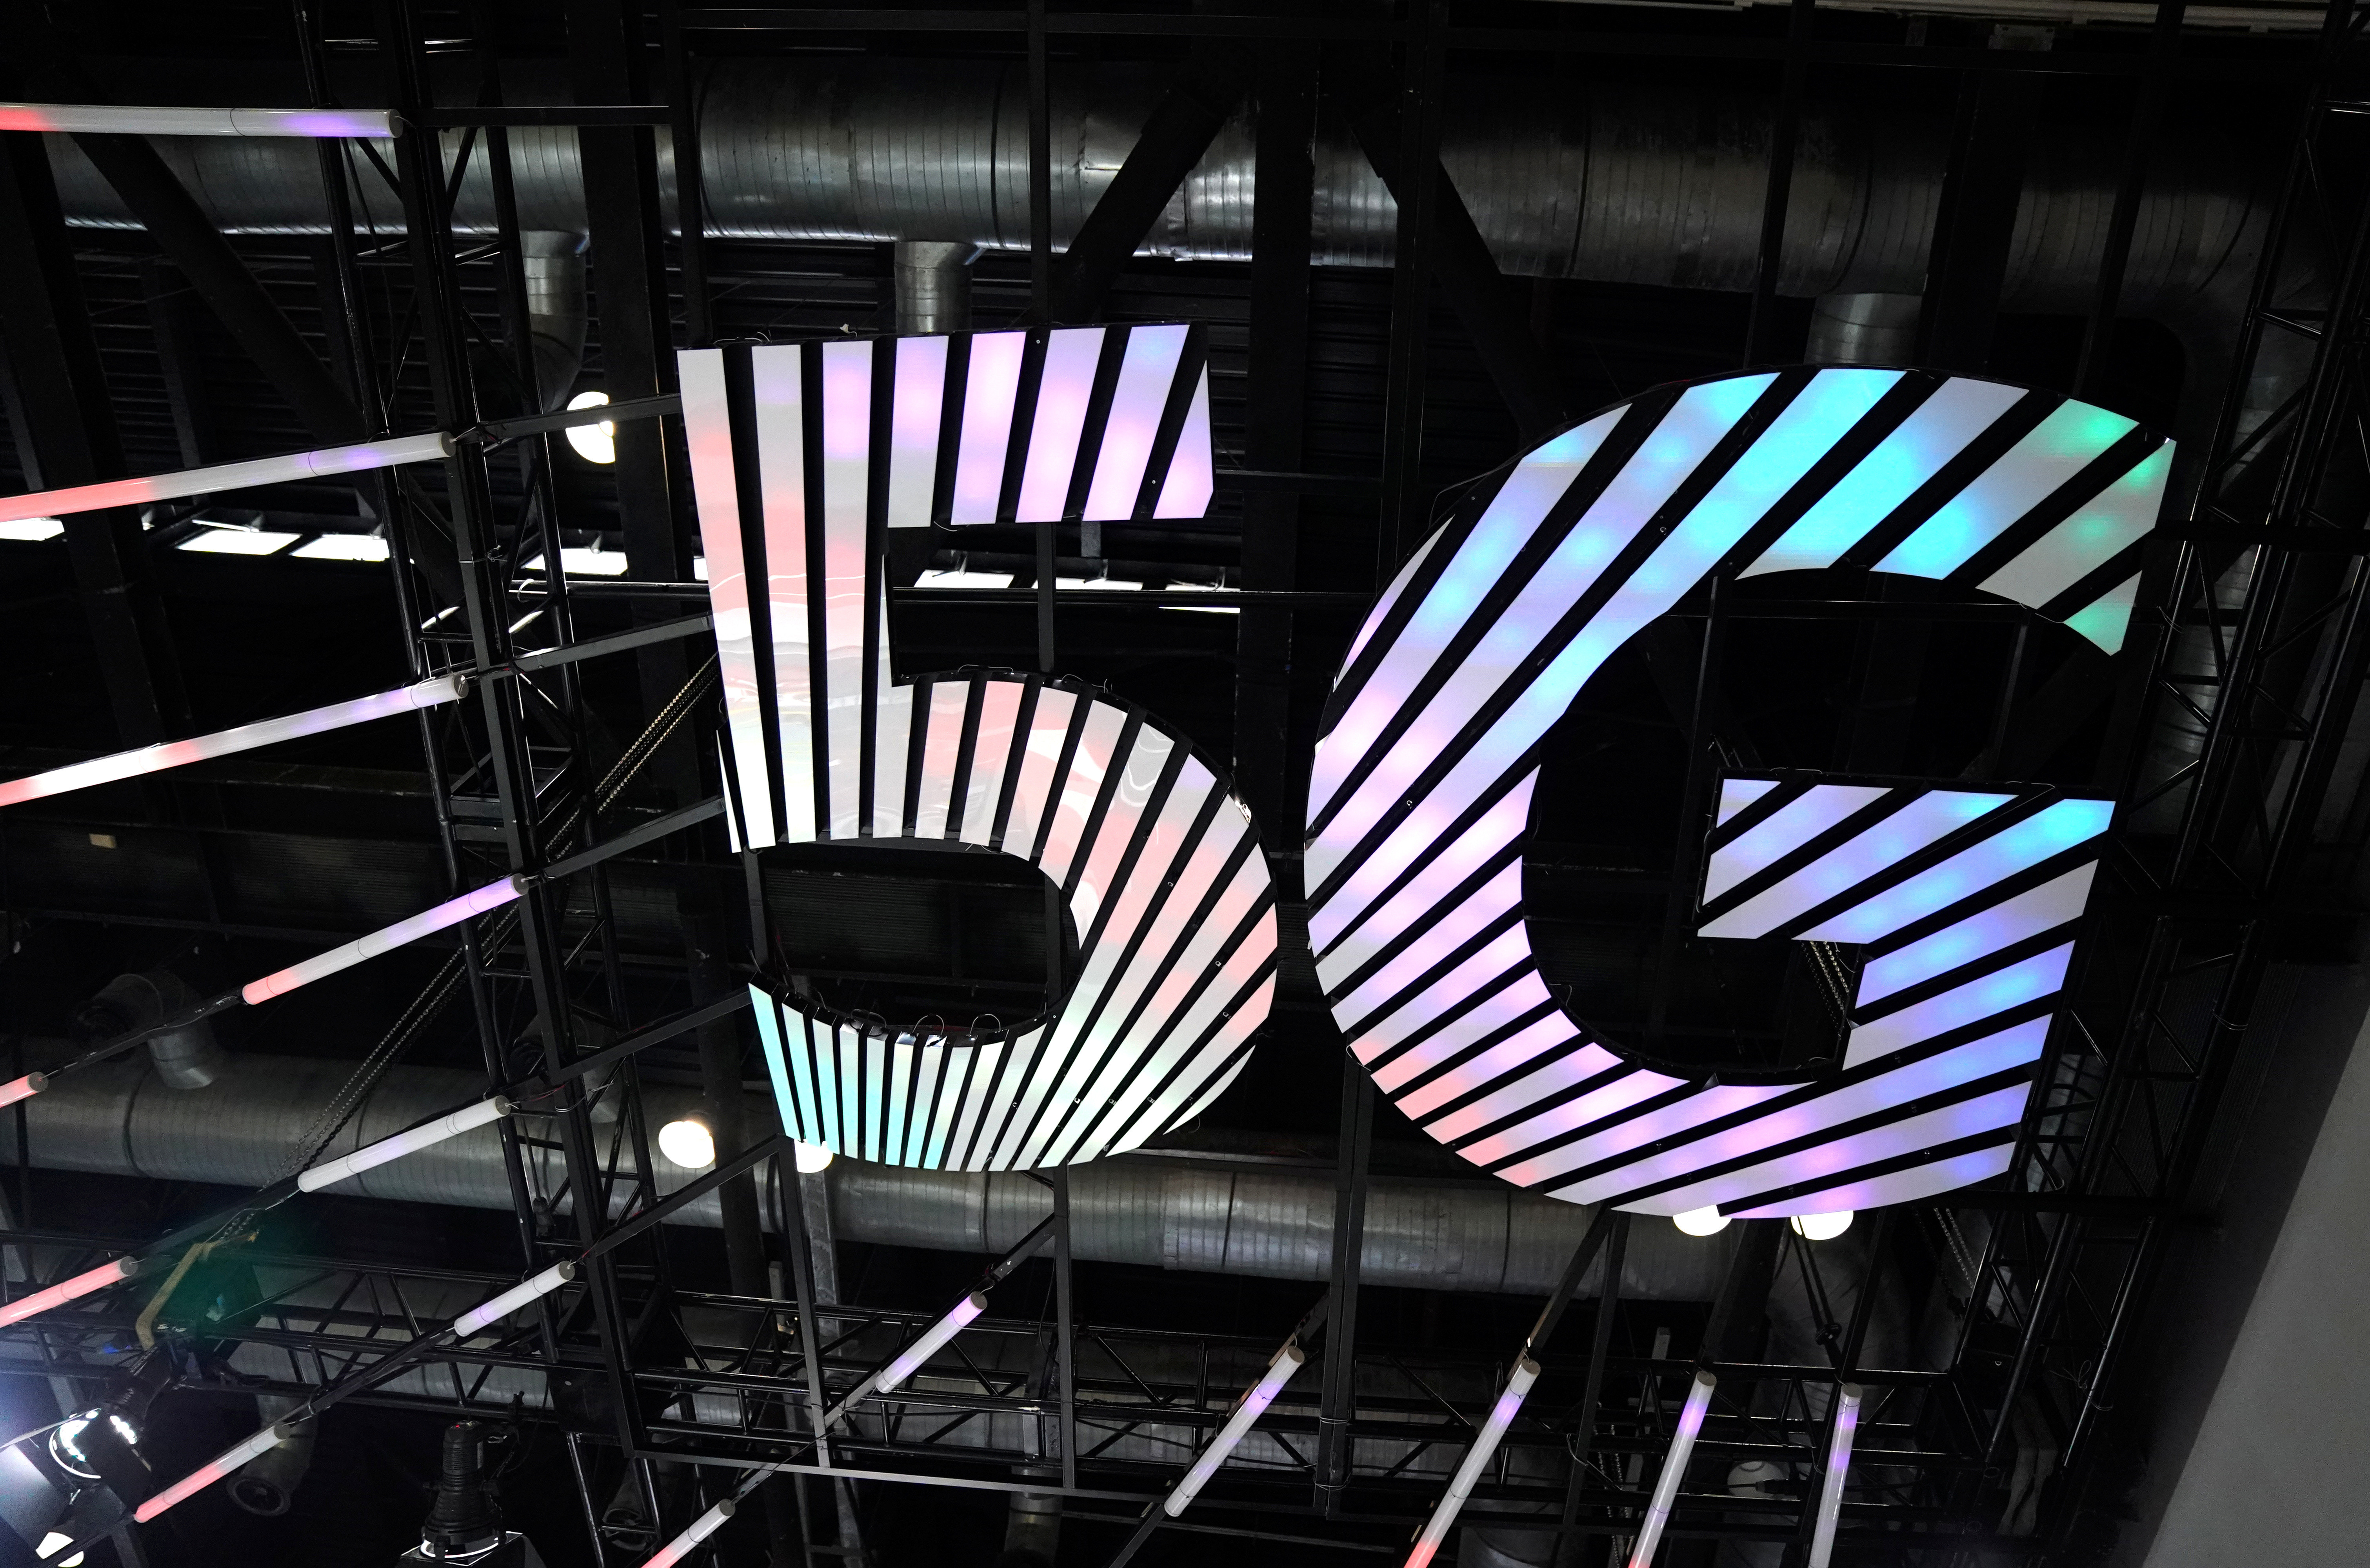 A sign of 5G is seen at the 2020 China International Fair for Trade in Services (CIFTIS) in Beijing, China September 4, 2020. REUTERS/Tingshu Wang - RC2JRI94S245